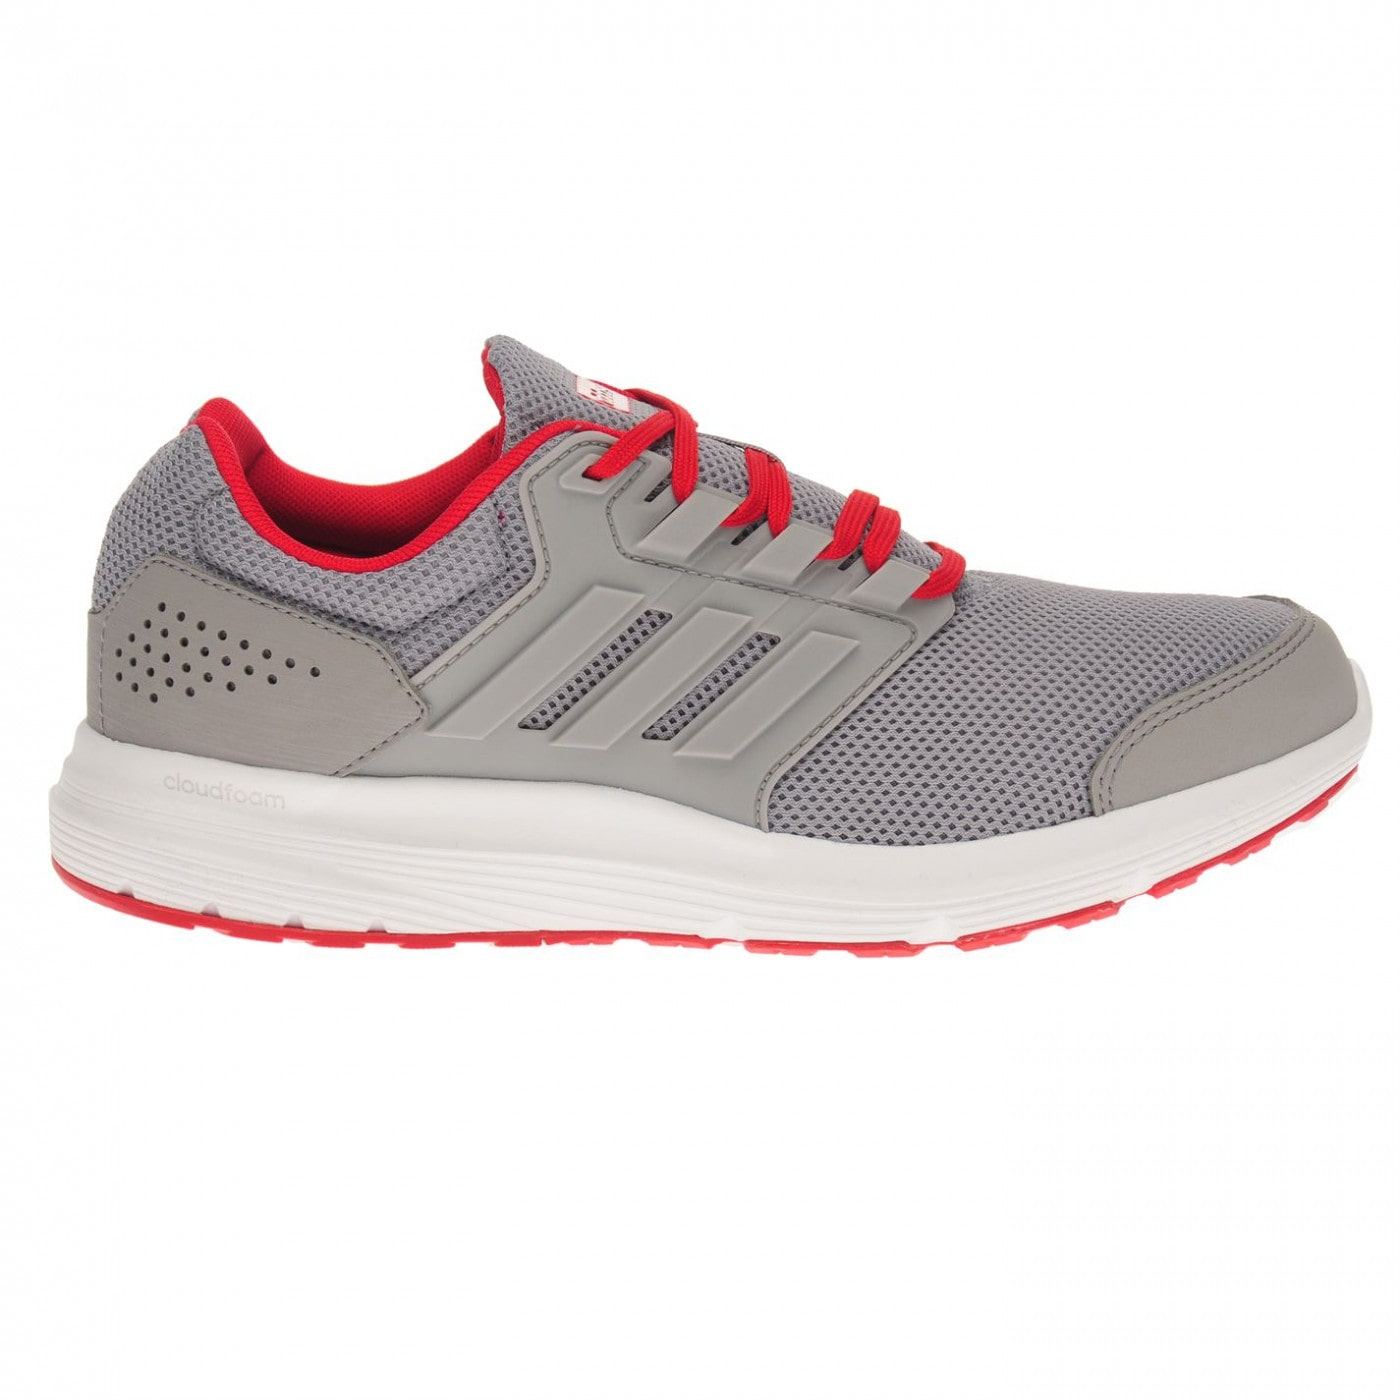 Adidas Galaxy 4 Mens Trainers FACTCOOL